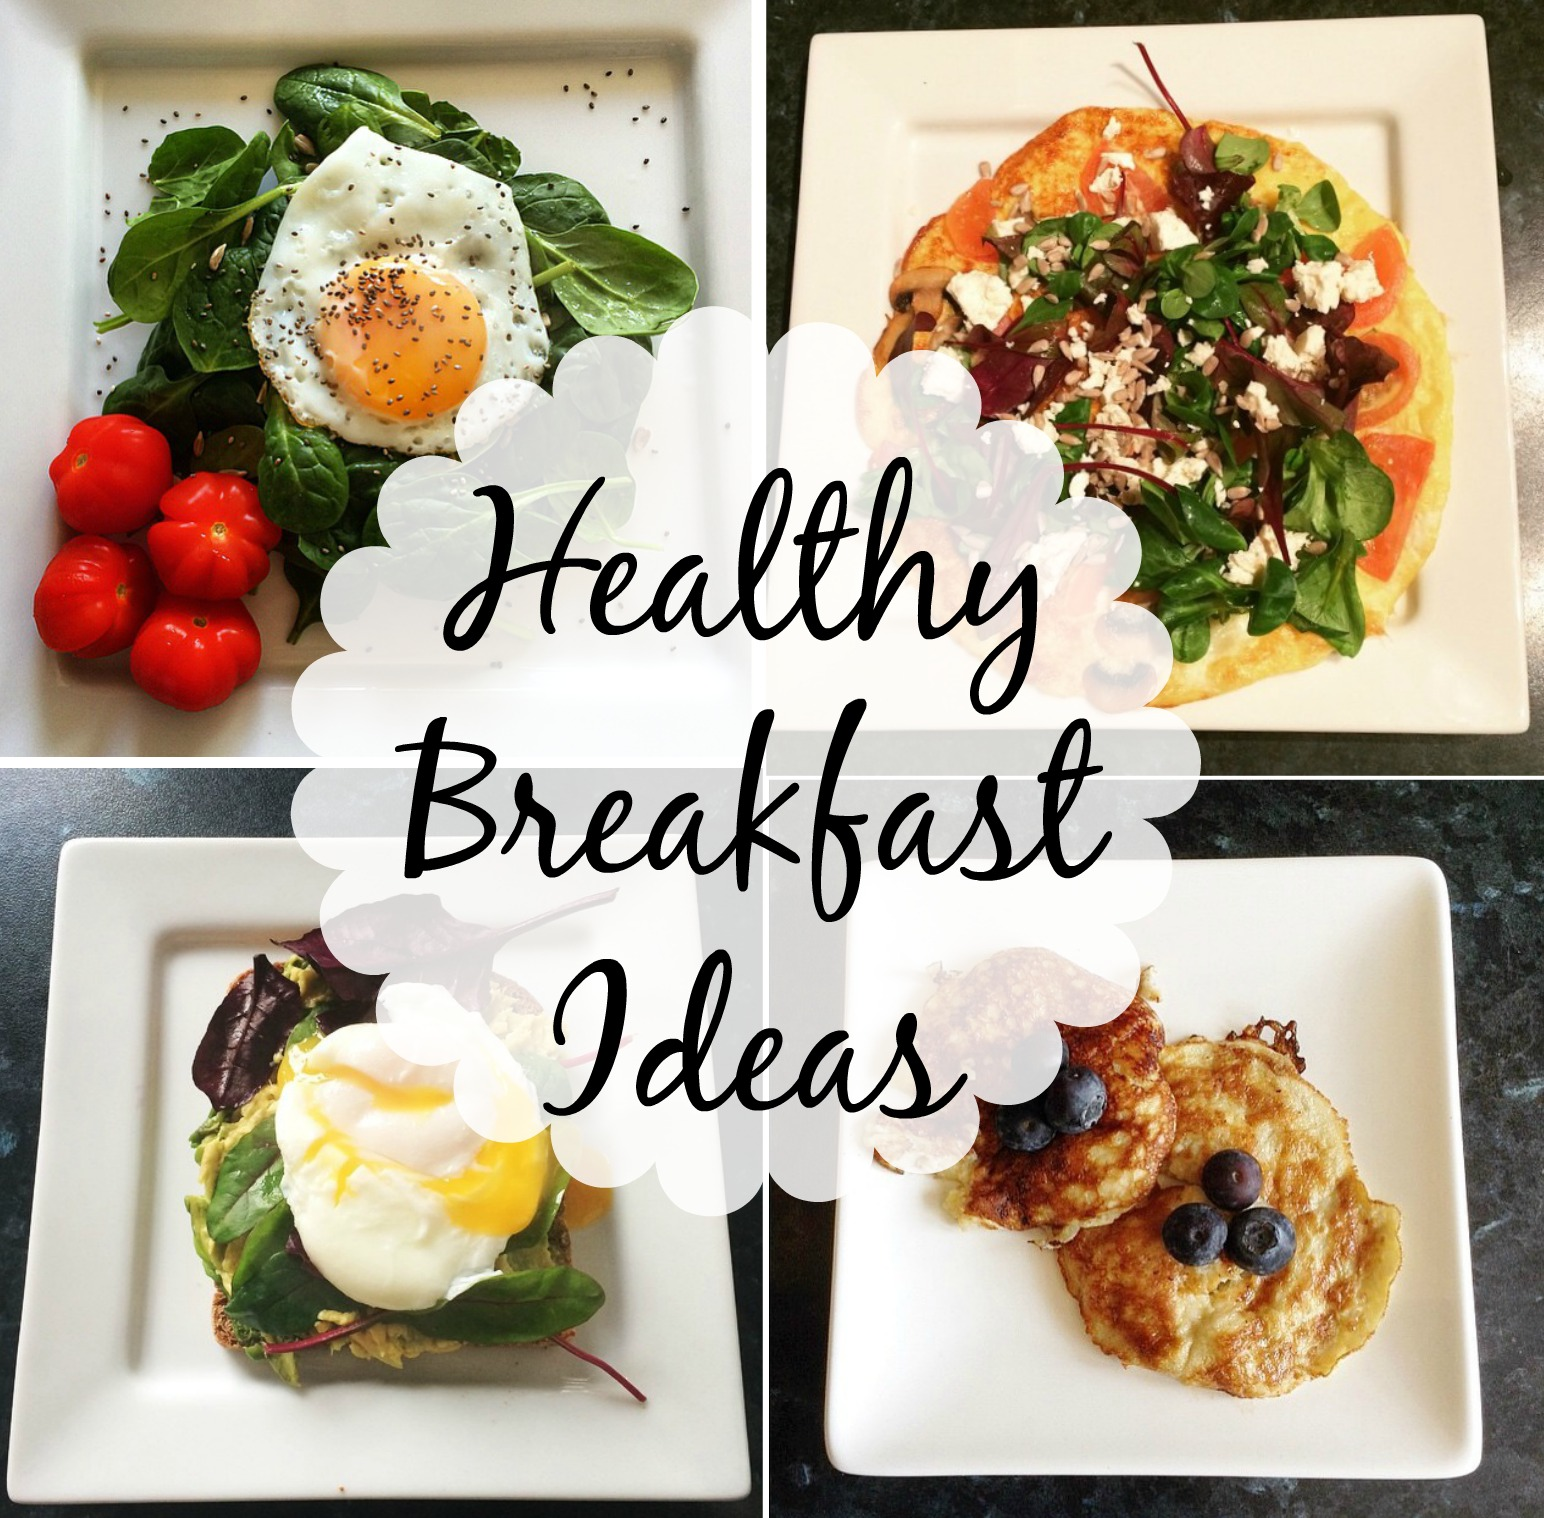 Healthy Breakfast Ideas | Vanity Fairest